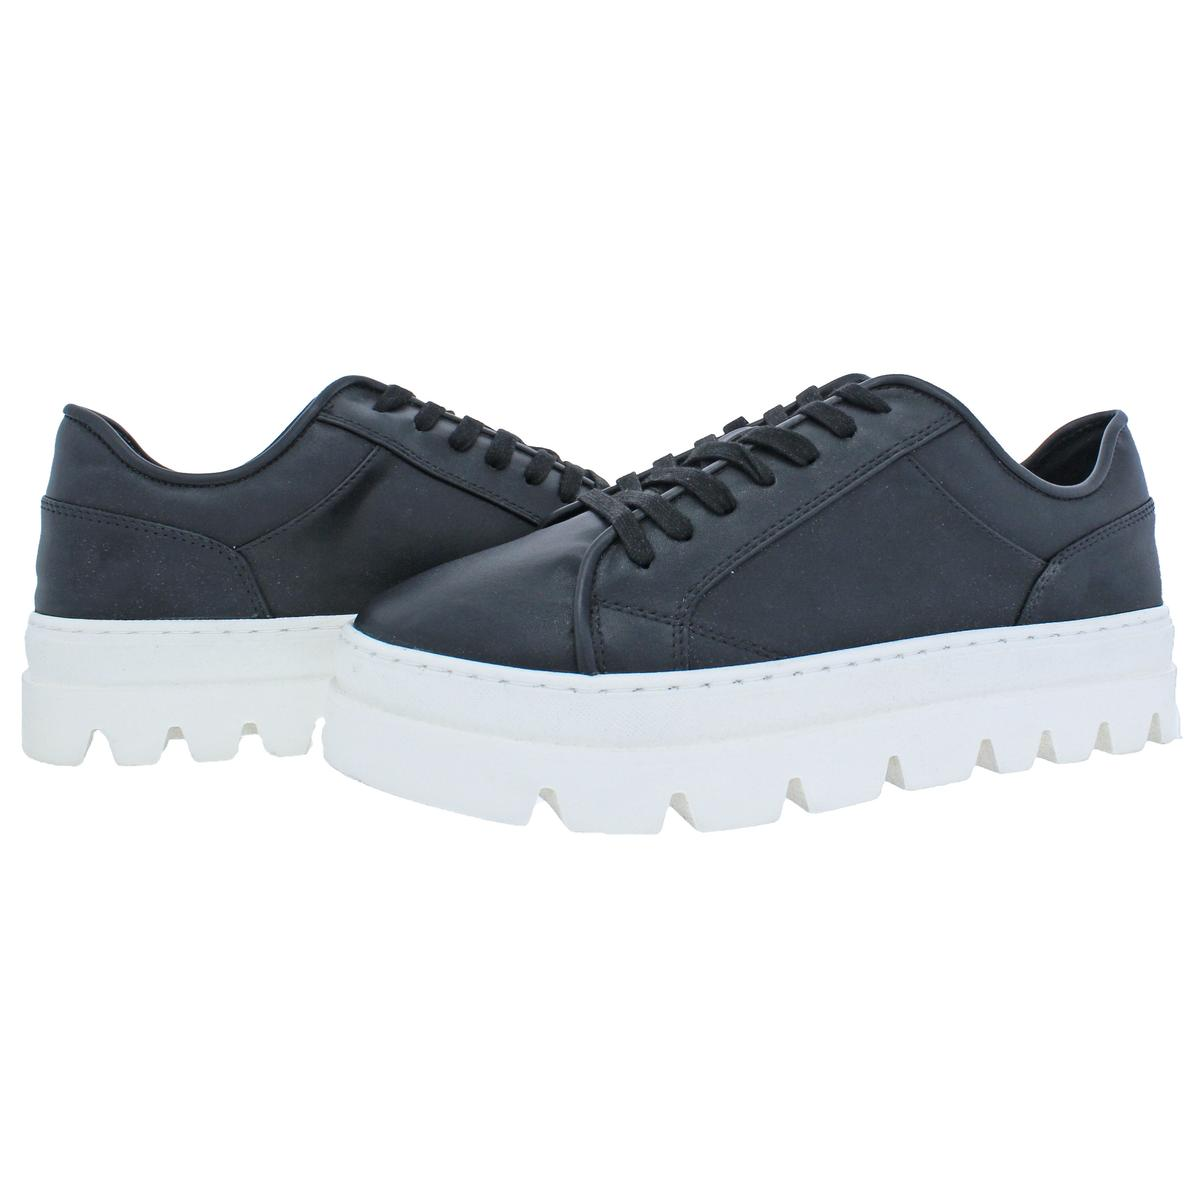 Steve-Madden-Kickstart-Women-039-s-Faux-Leather-Fashion-Lace-Sneaker-Shoes thumbnail 6